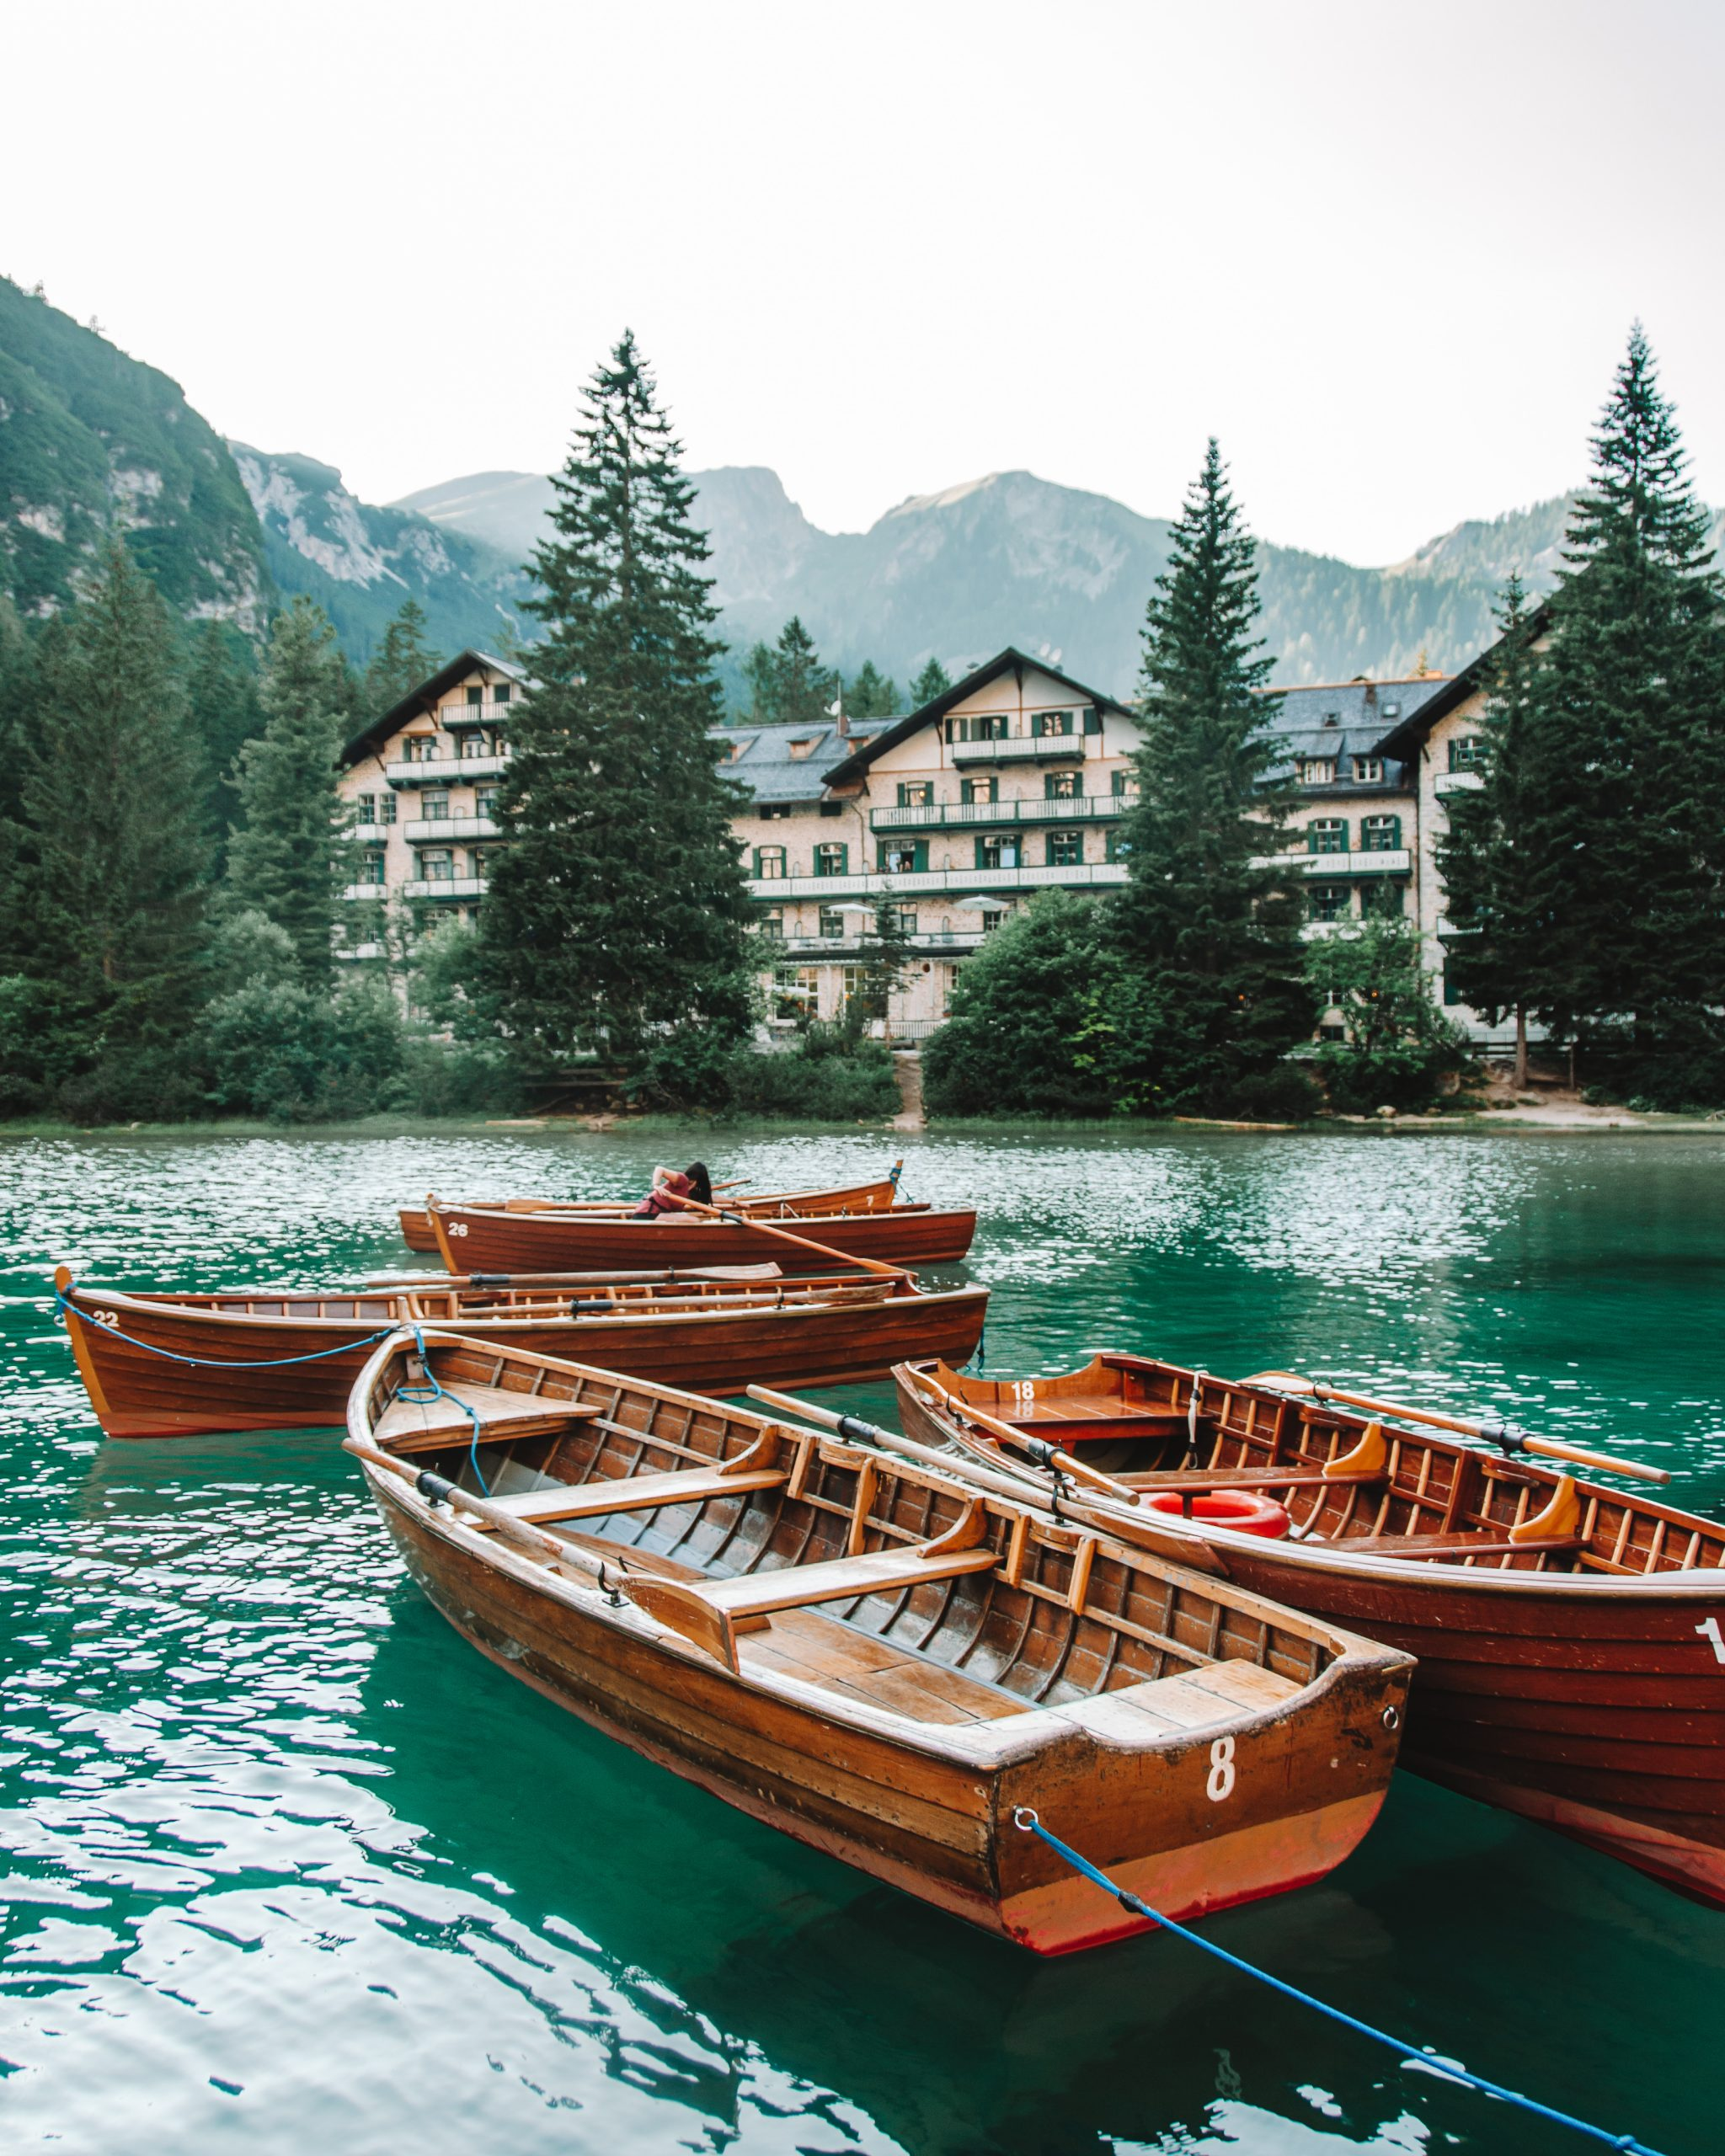 Boats at Lago di Braies in Dolomites, Italy